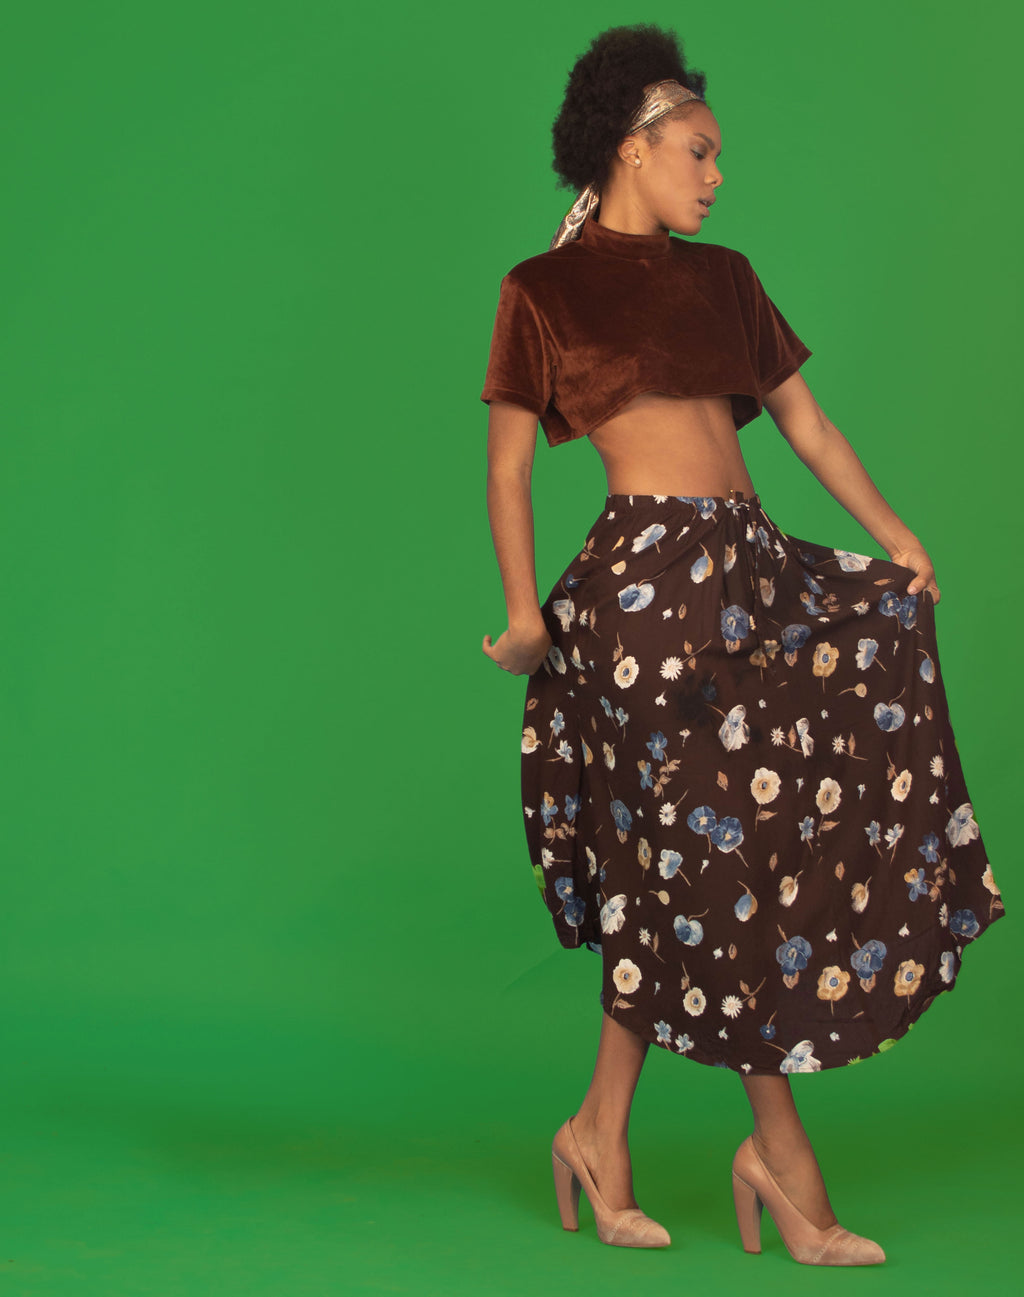 BROWN FLORAL MAXI SKIRT